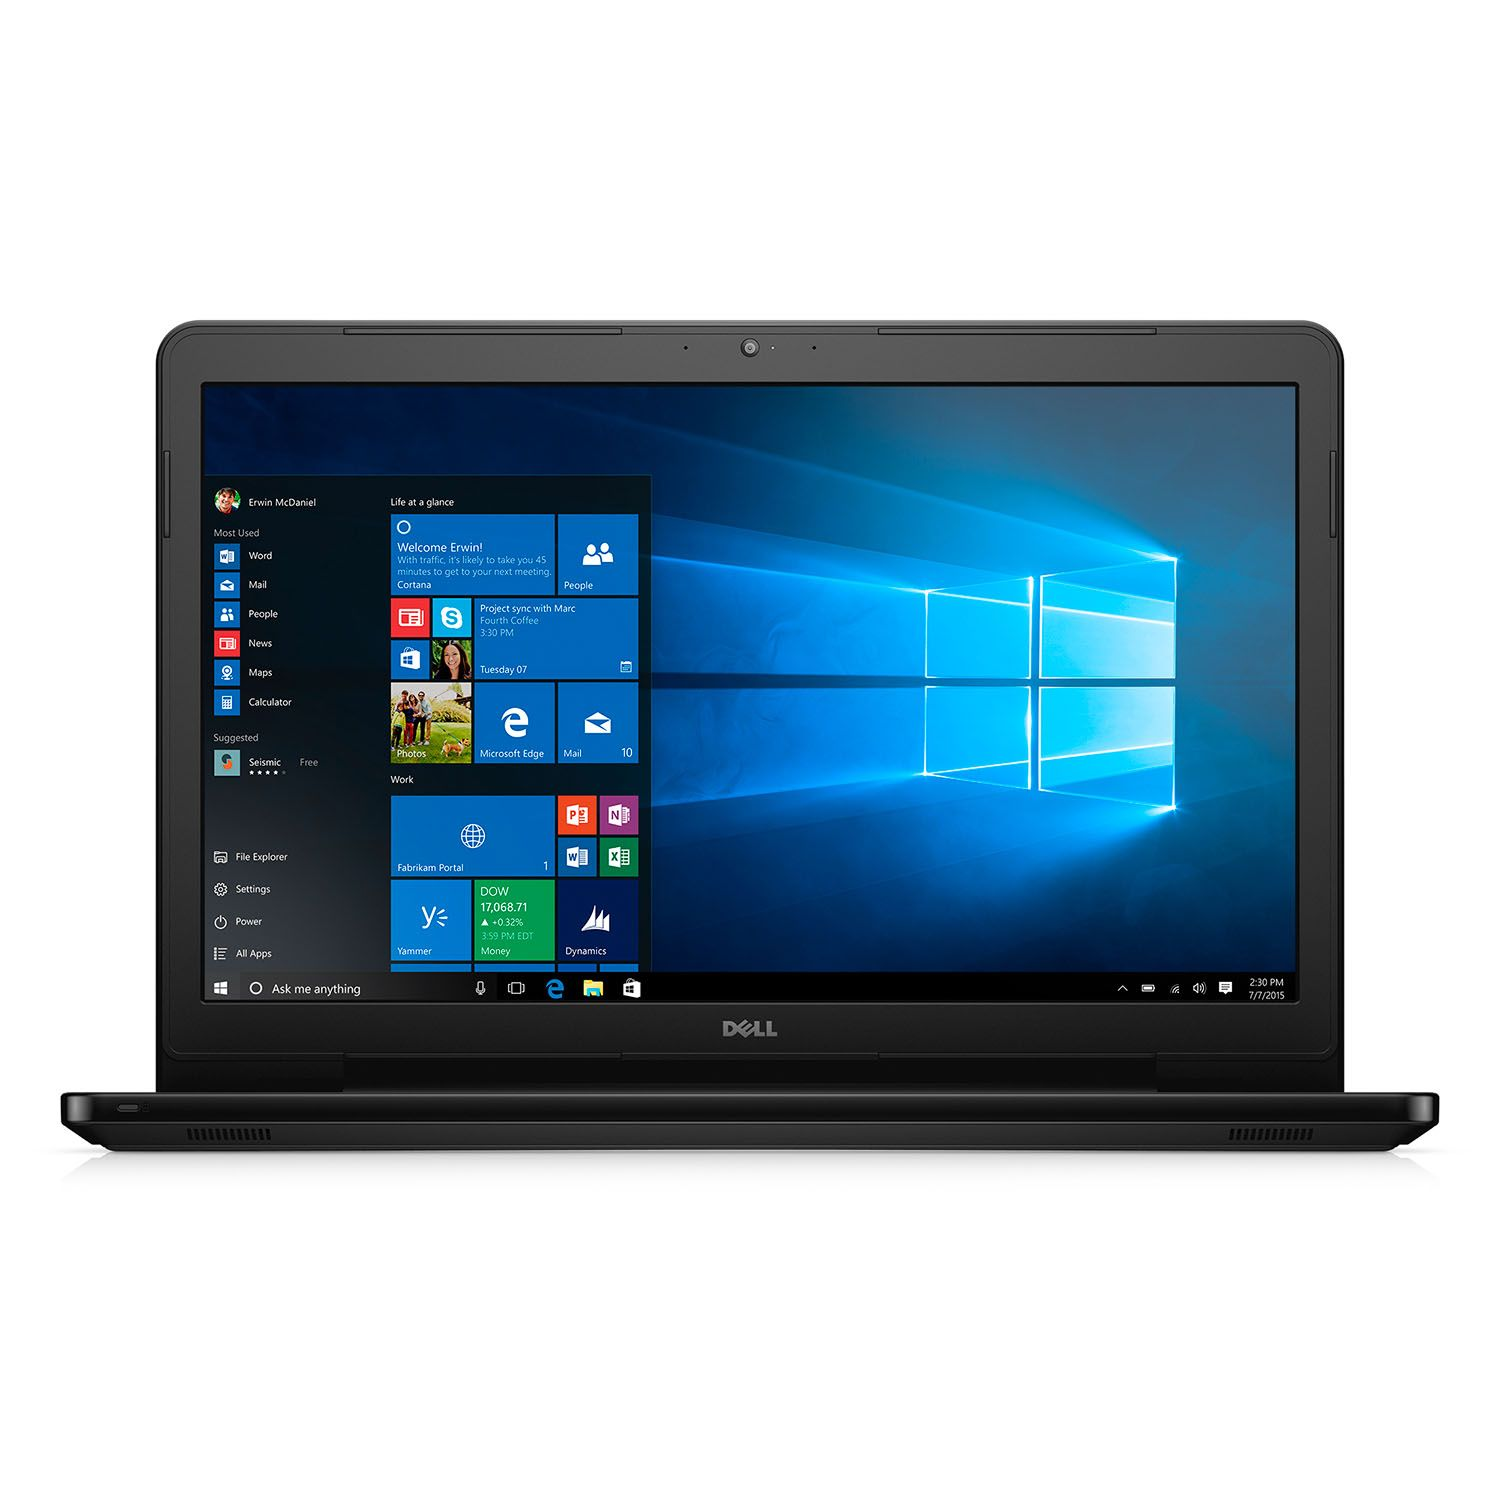 Dell Inspiron 17 5000,17.3-inch HD Truelife LED-Backlit D...